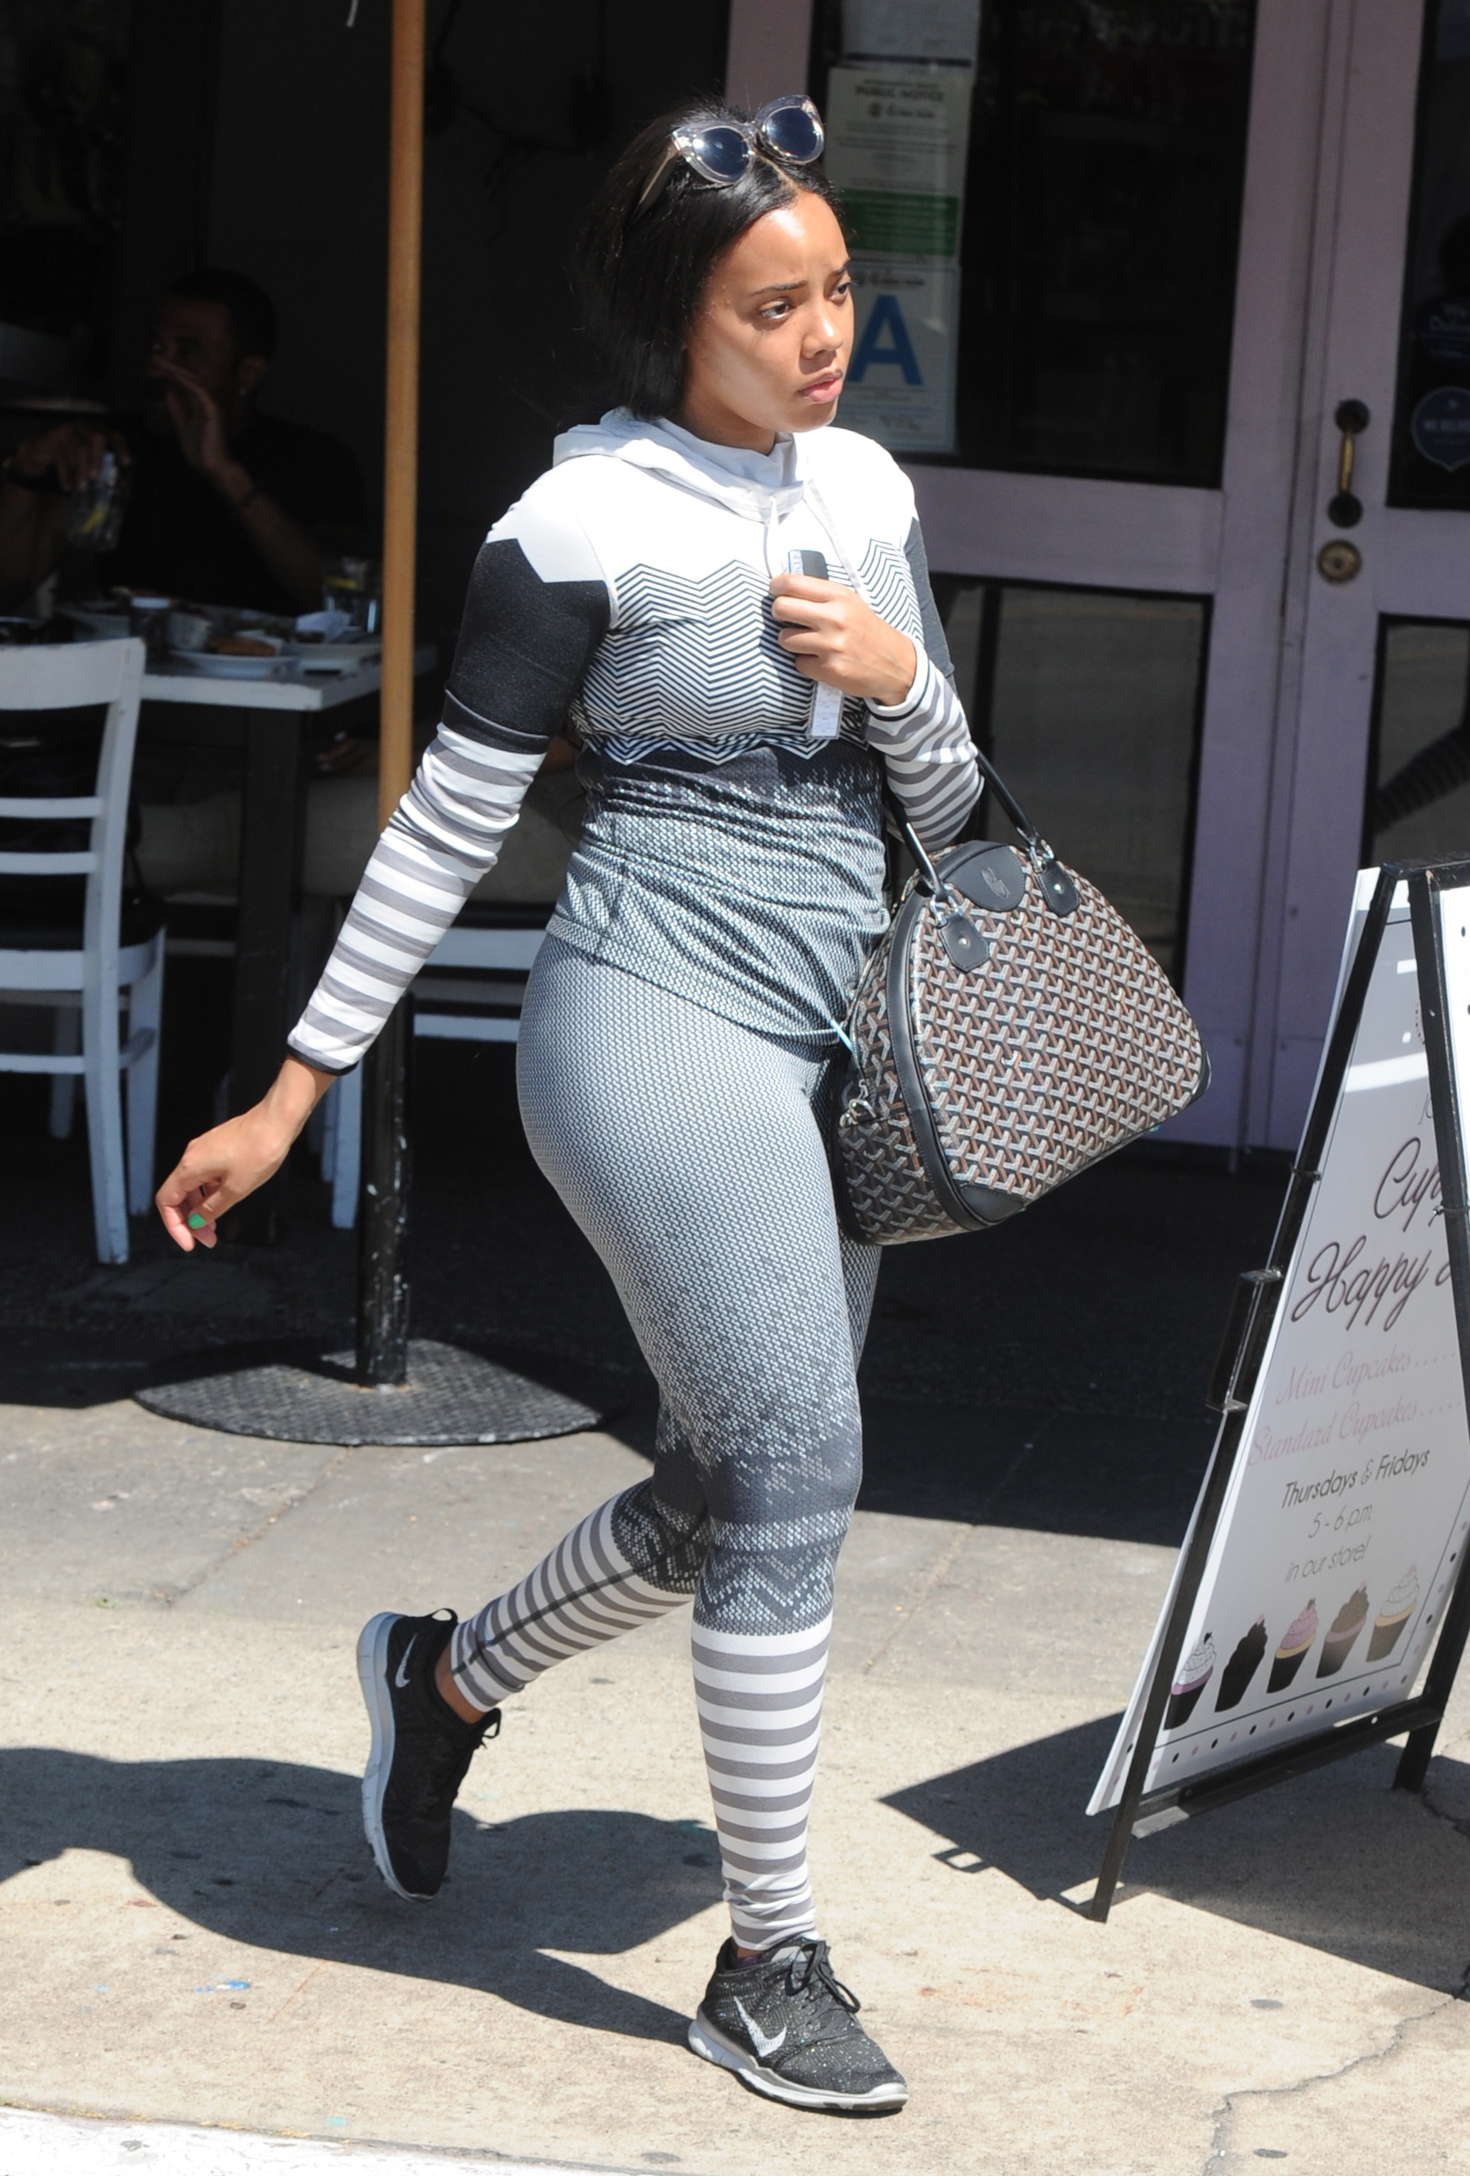 Angela Simmons Booty in Tights       GotCeleb